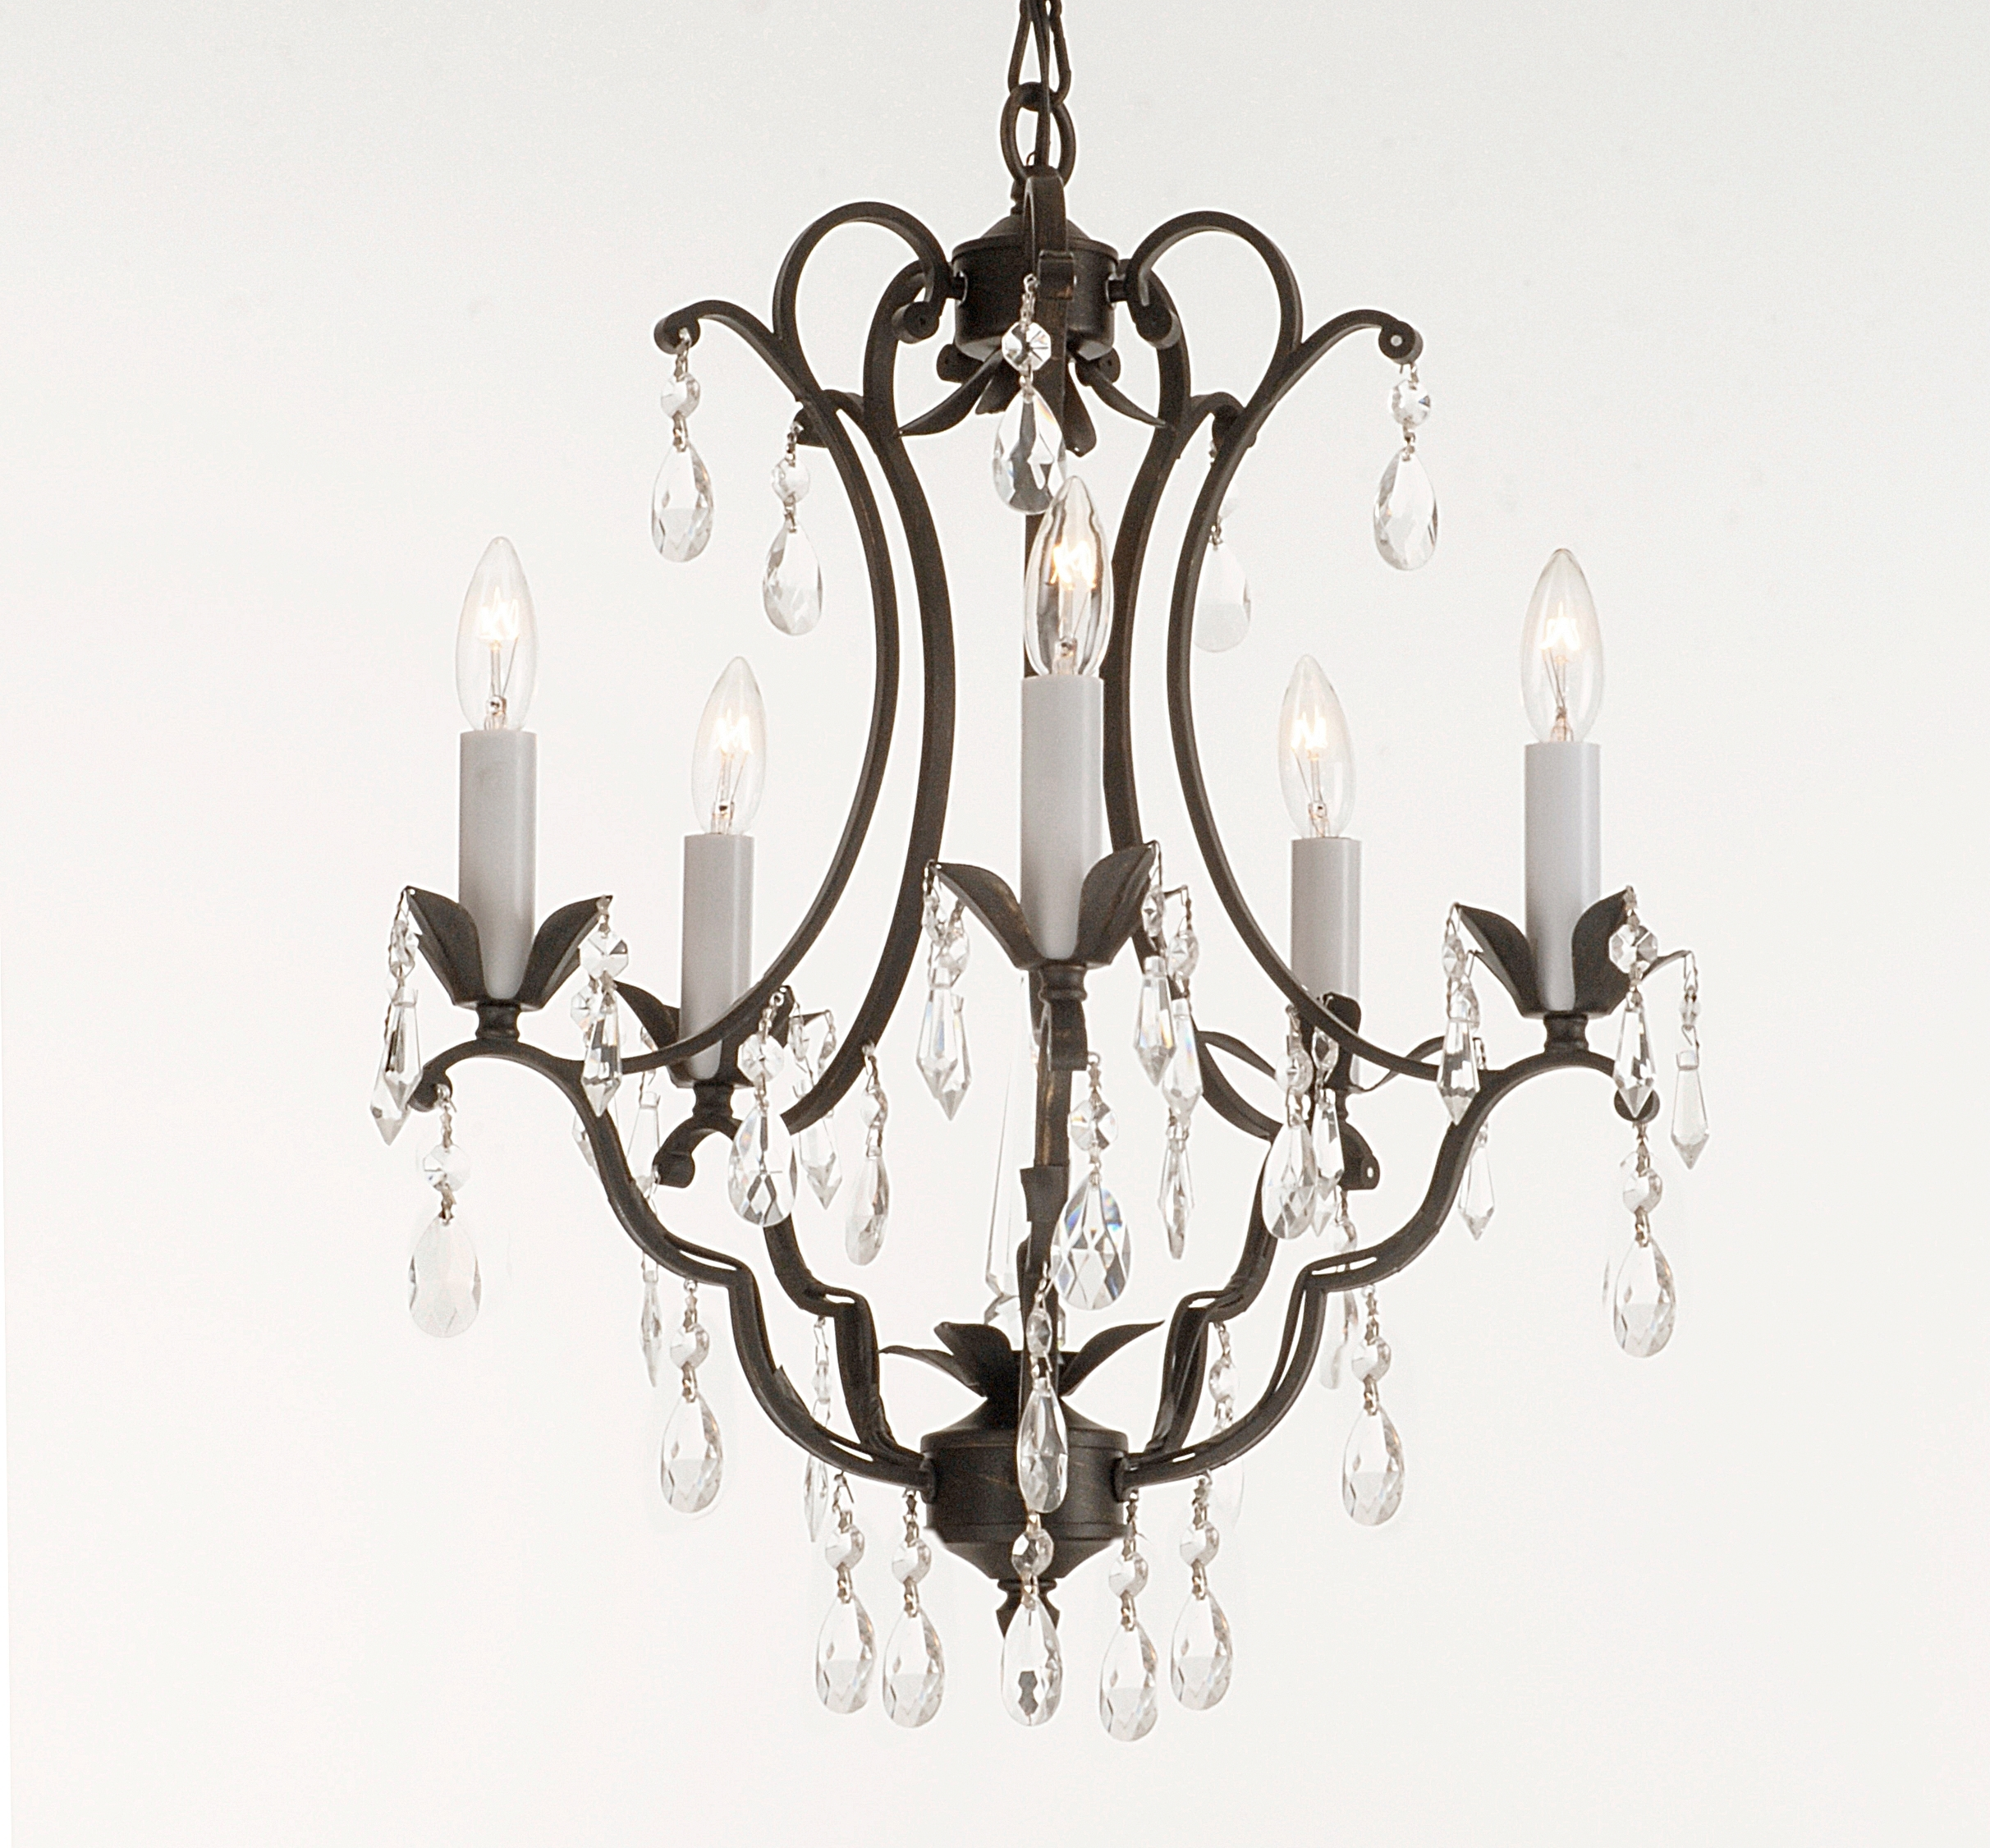 Vintage Black Chandelier With Fashionable Light : Furniture Vintage Look Modern Black Wrought Iron Chandeliers (View 12 of 15)